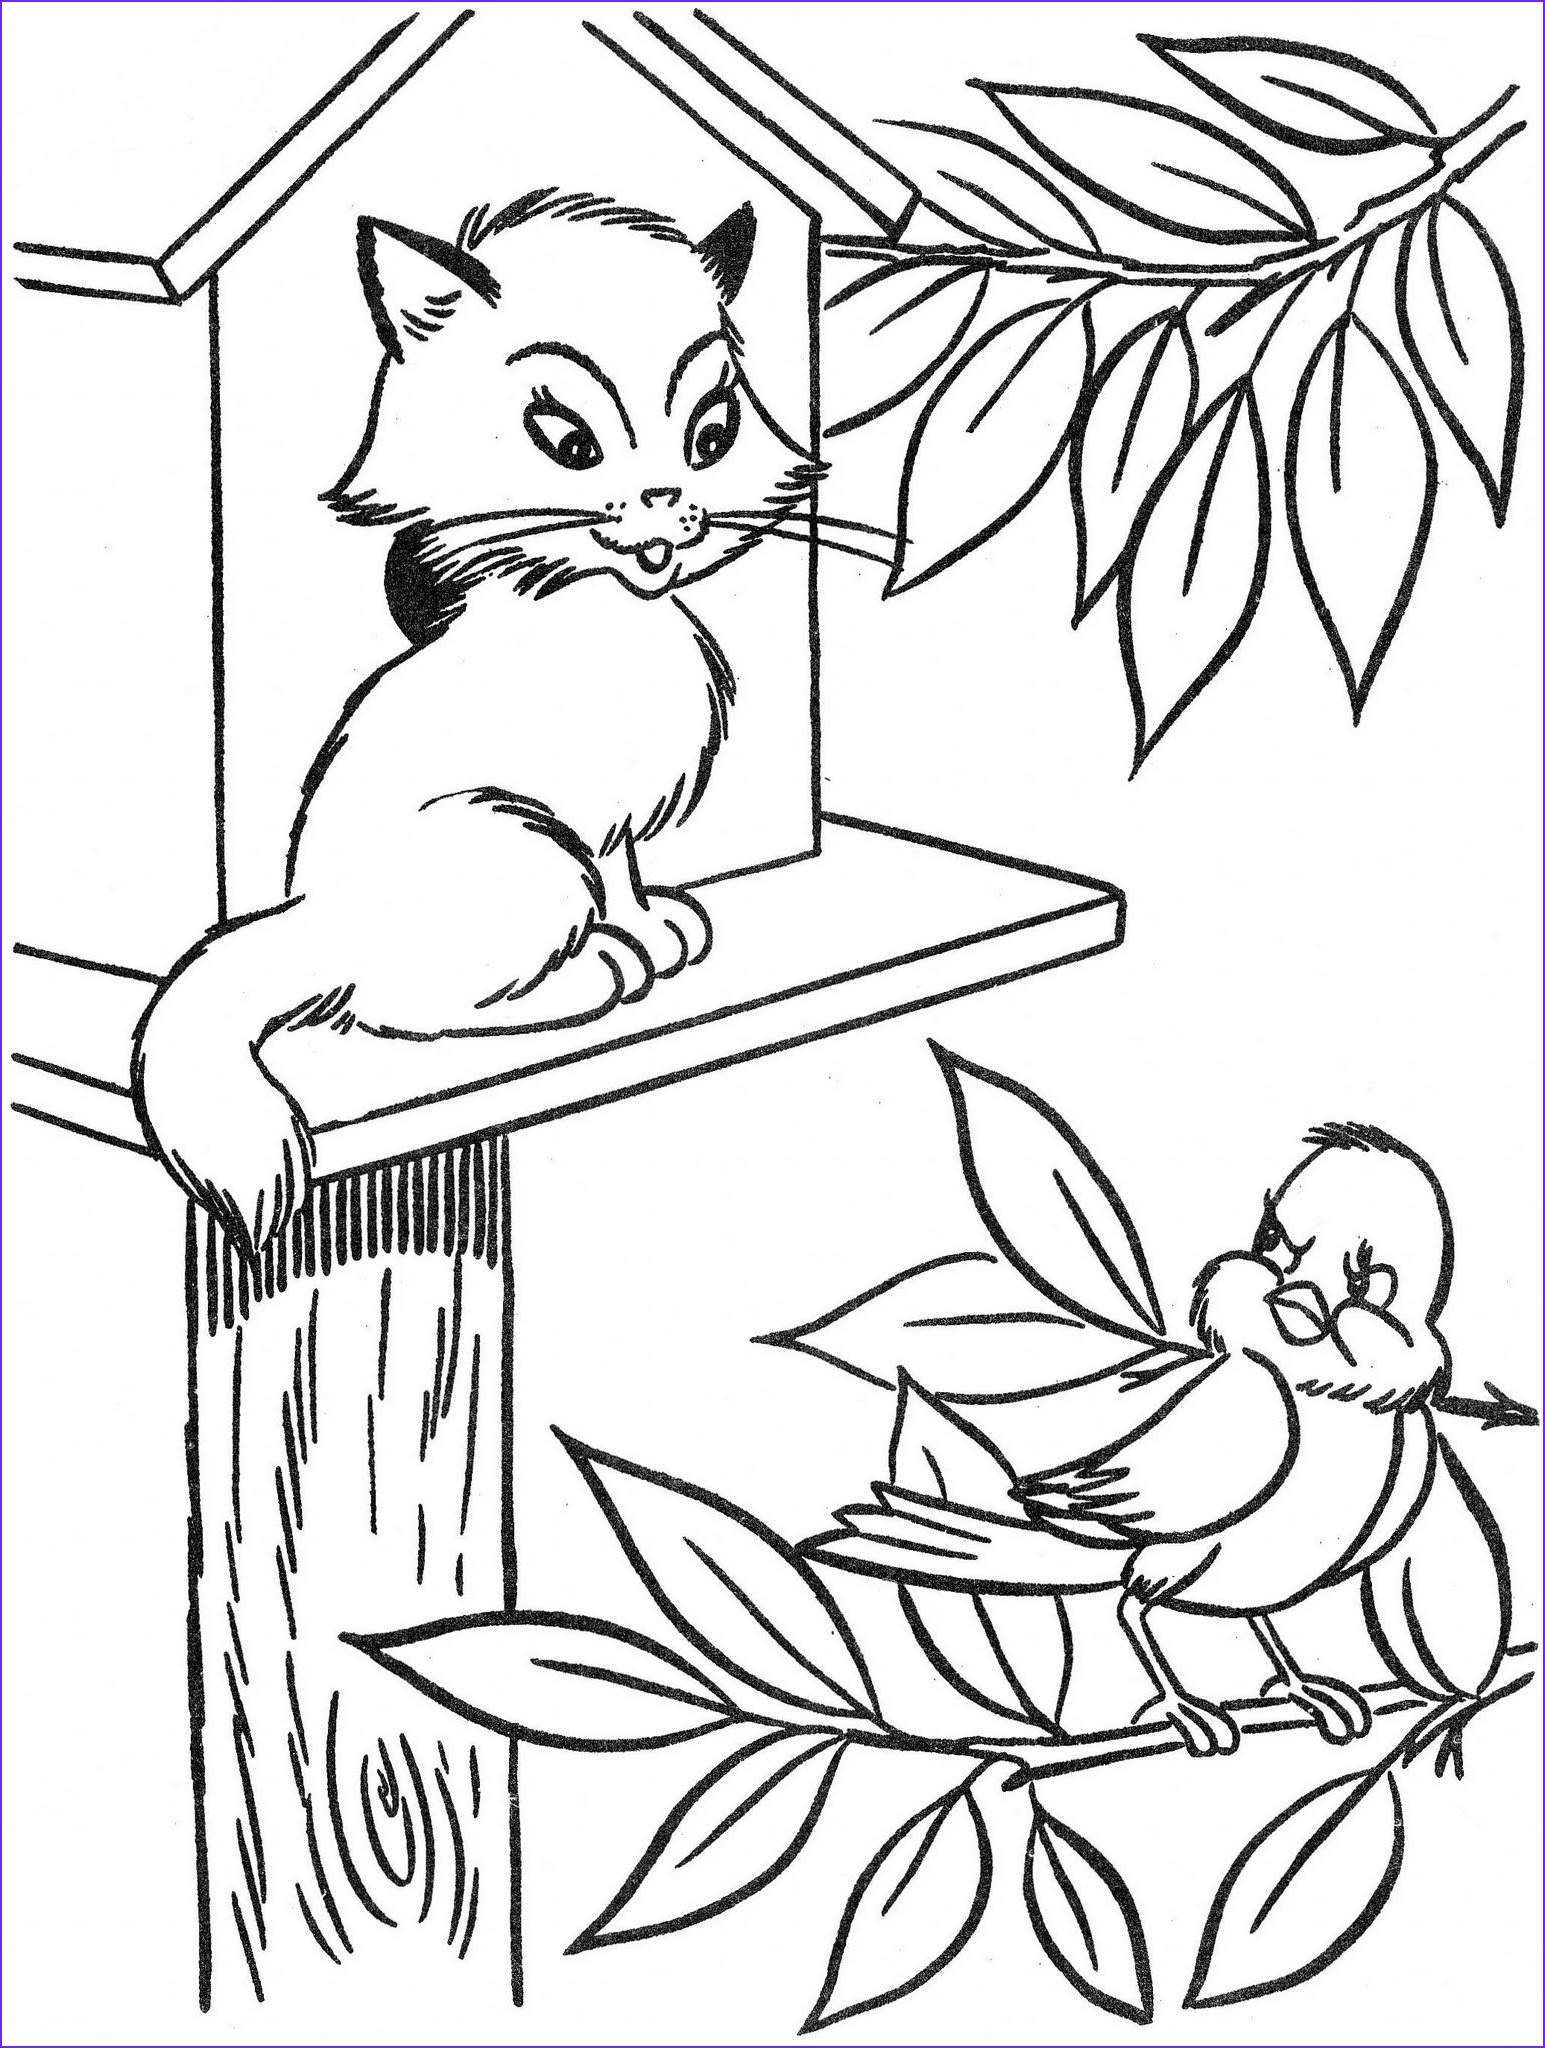 Bonnie Coloring Page Awesome Stock Fnaf2 Old Bonnie Coloring Pages Coloring Pages